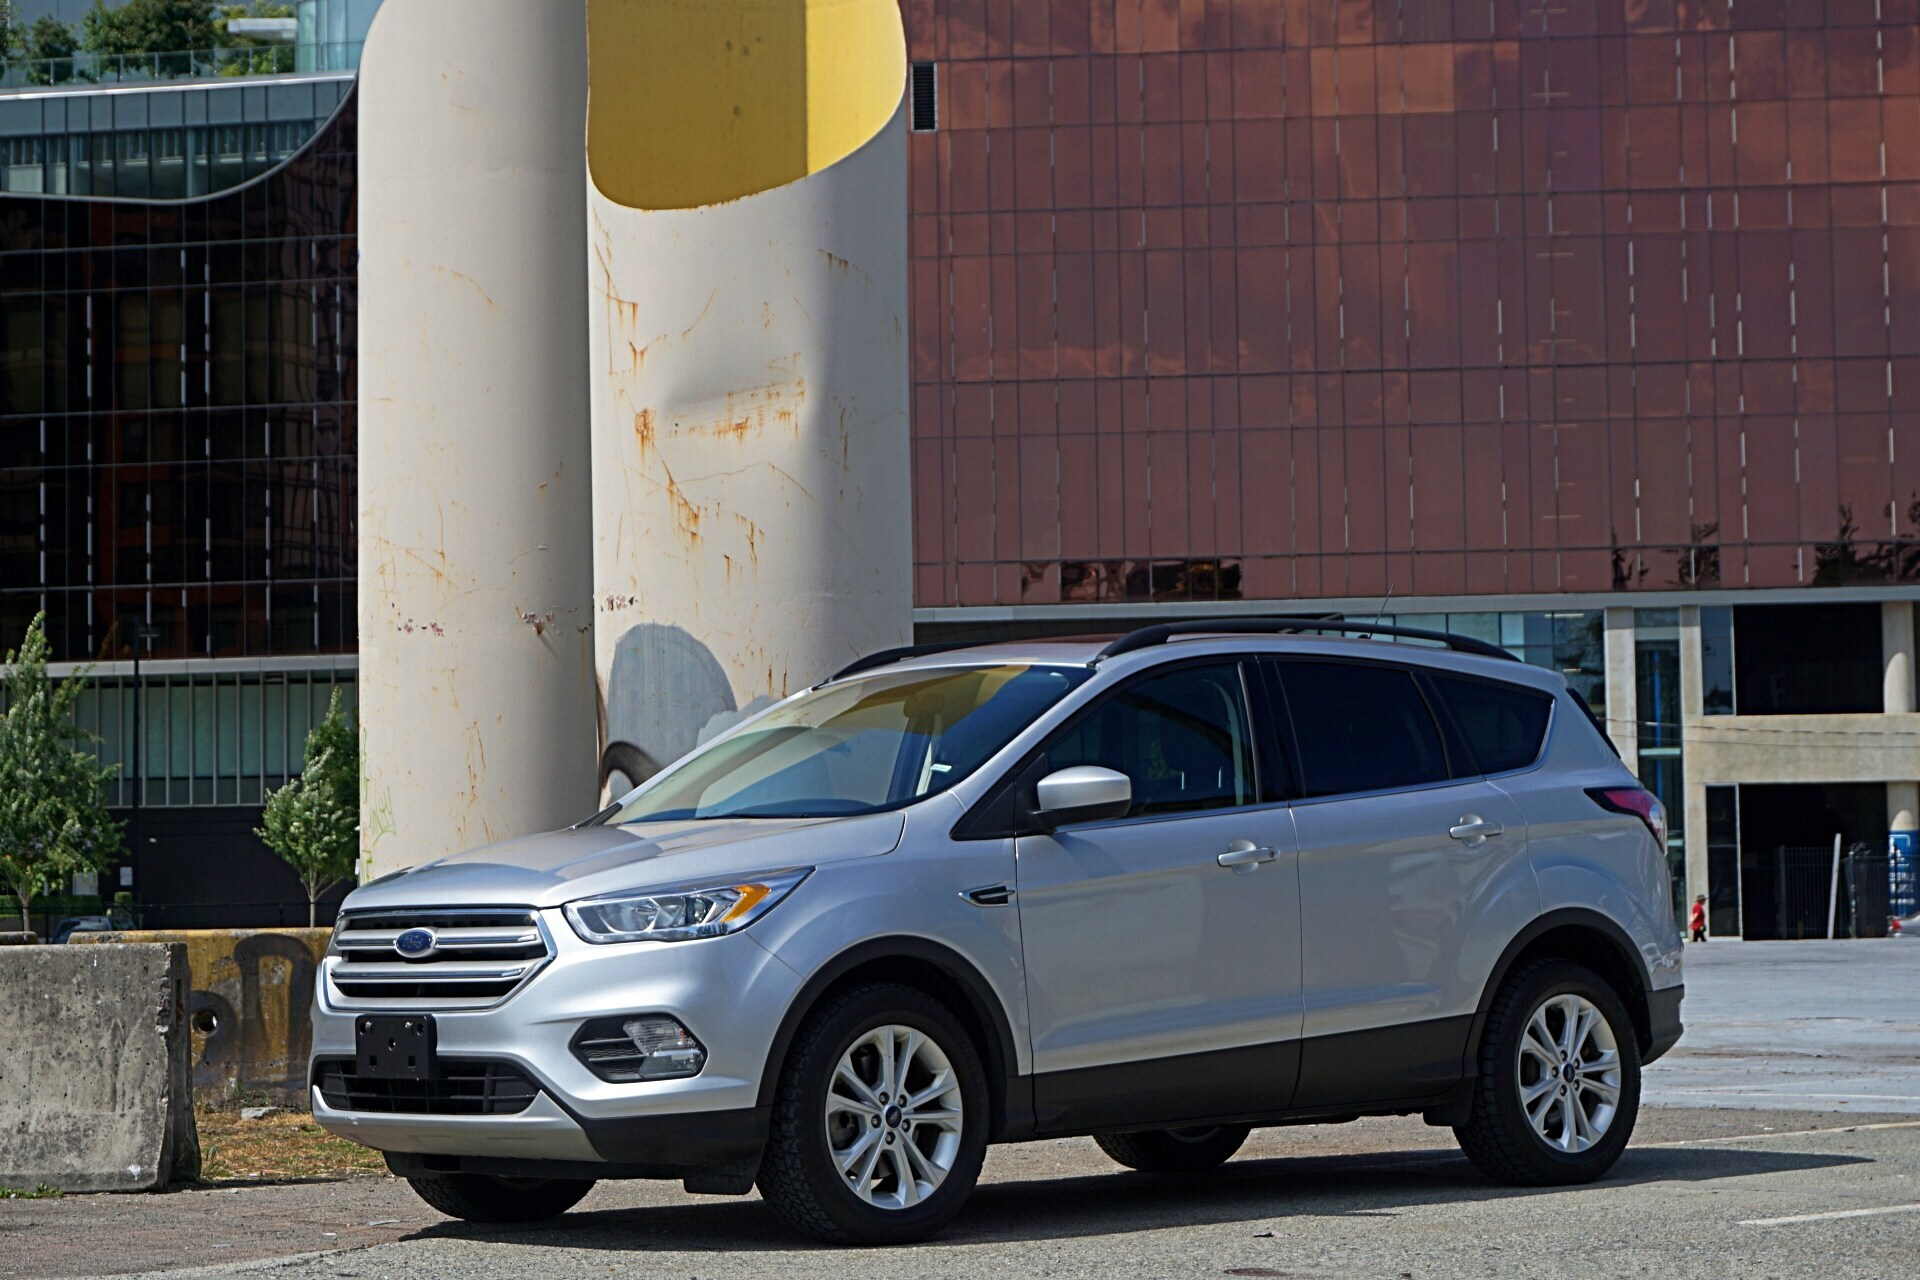 2018 Ford Escape full